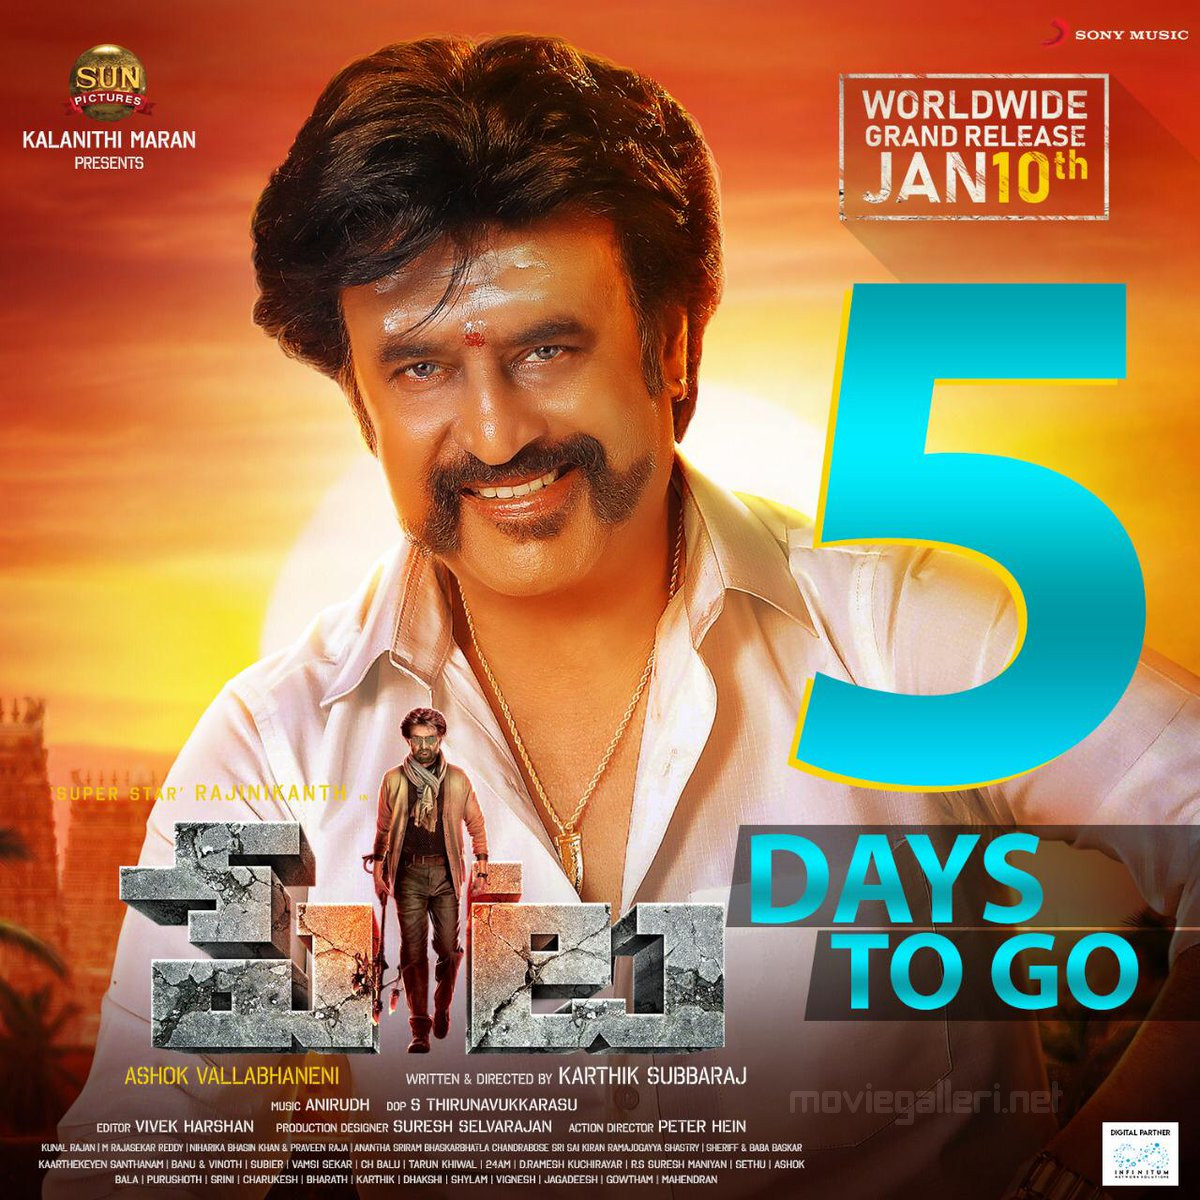 Rajinikanth Petta 5 Days to Go Poster